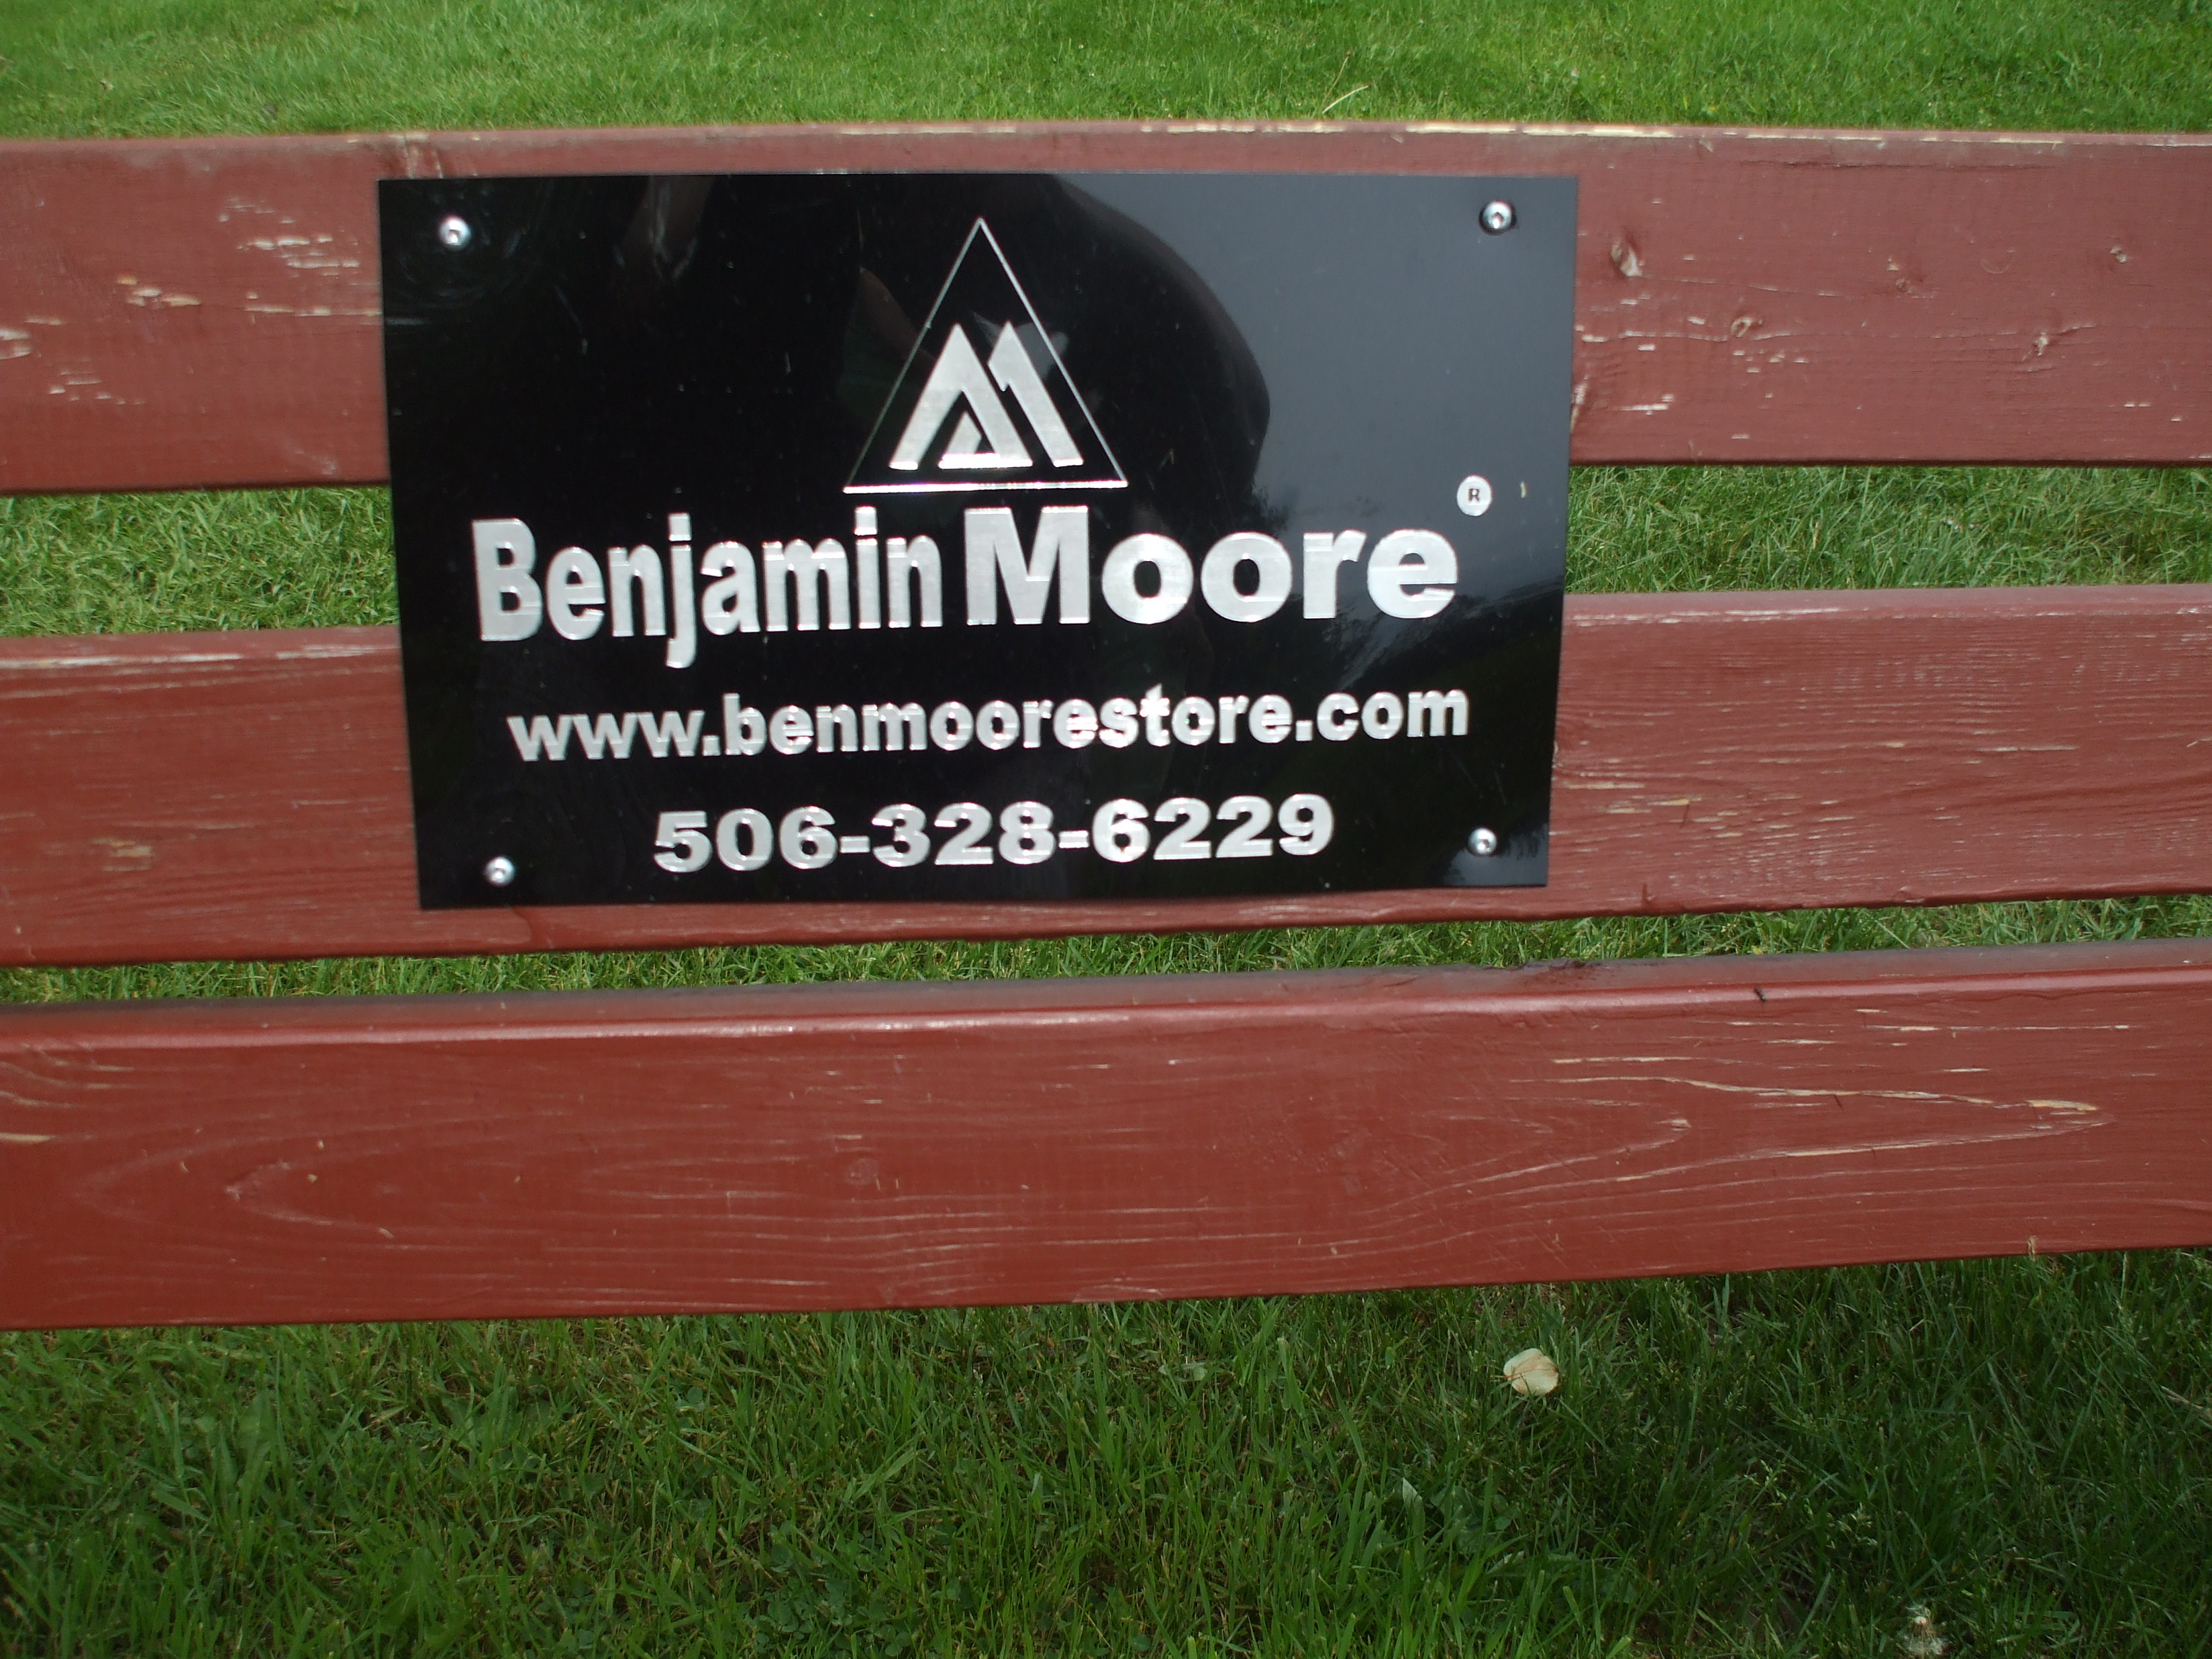 Bench Moore - Bench Sign